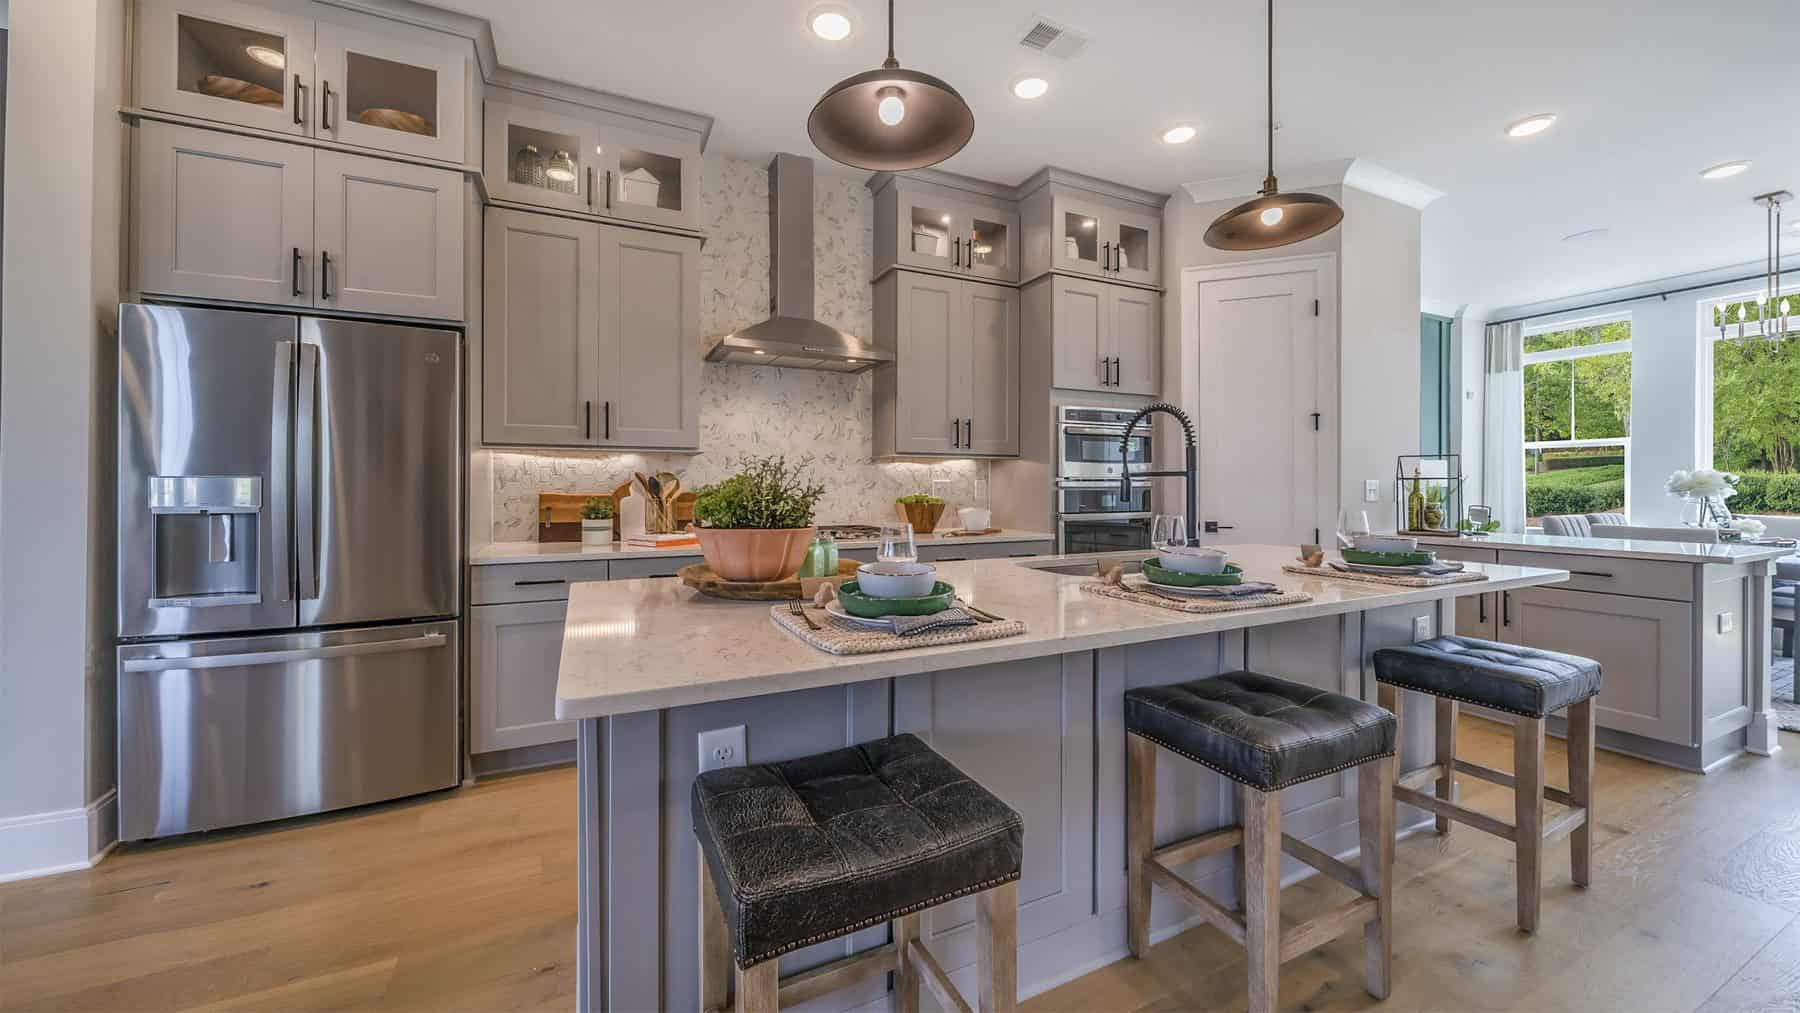 The Kitchen in the Model at DWH Ellison Park in Sandy Springs